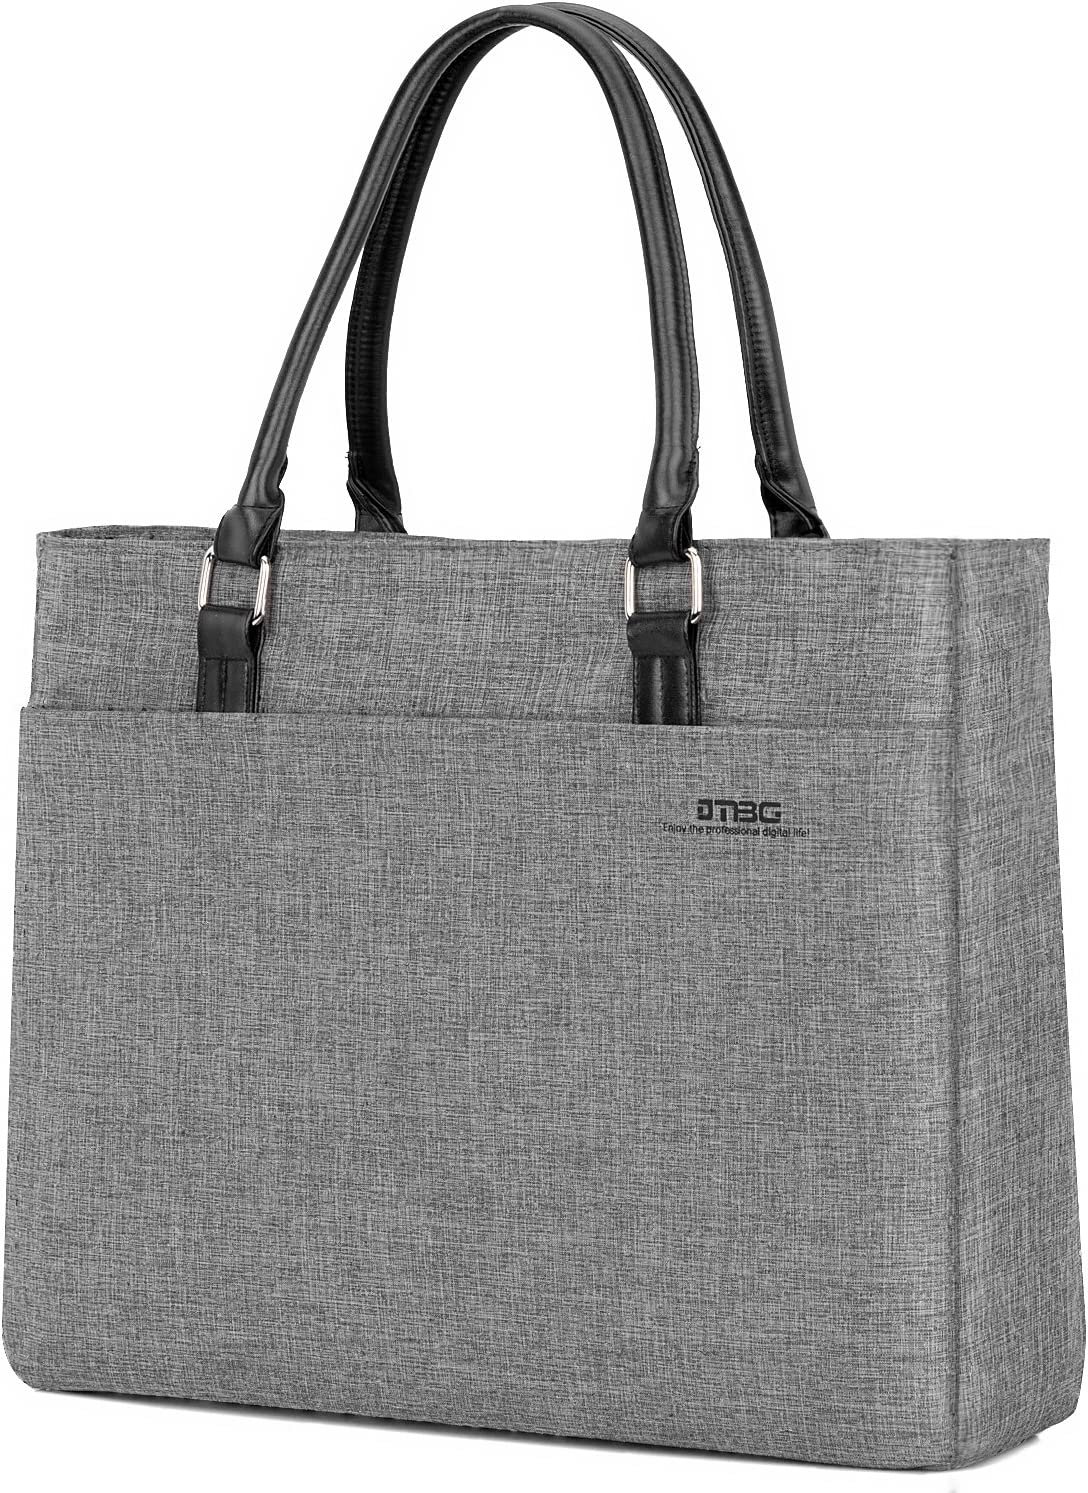 UtoteBag 15,6 Zoll Laptoptasche 15 - Laptoptasche Damen